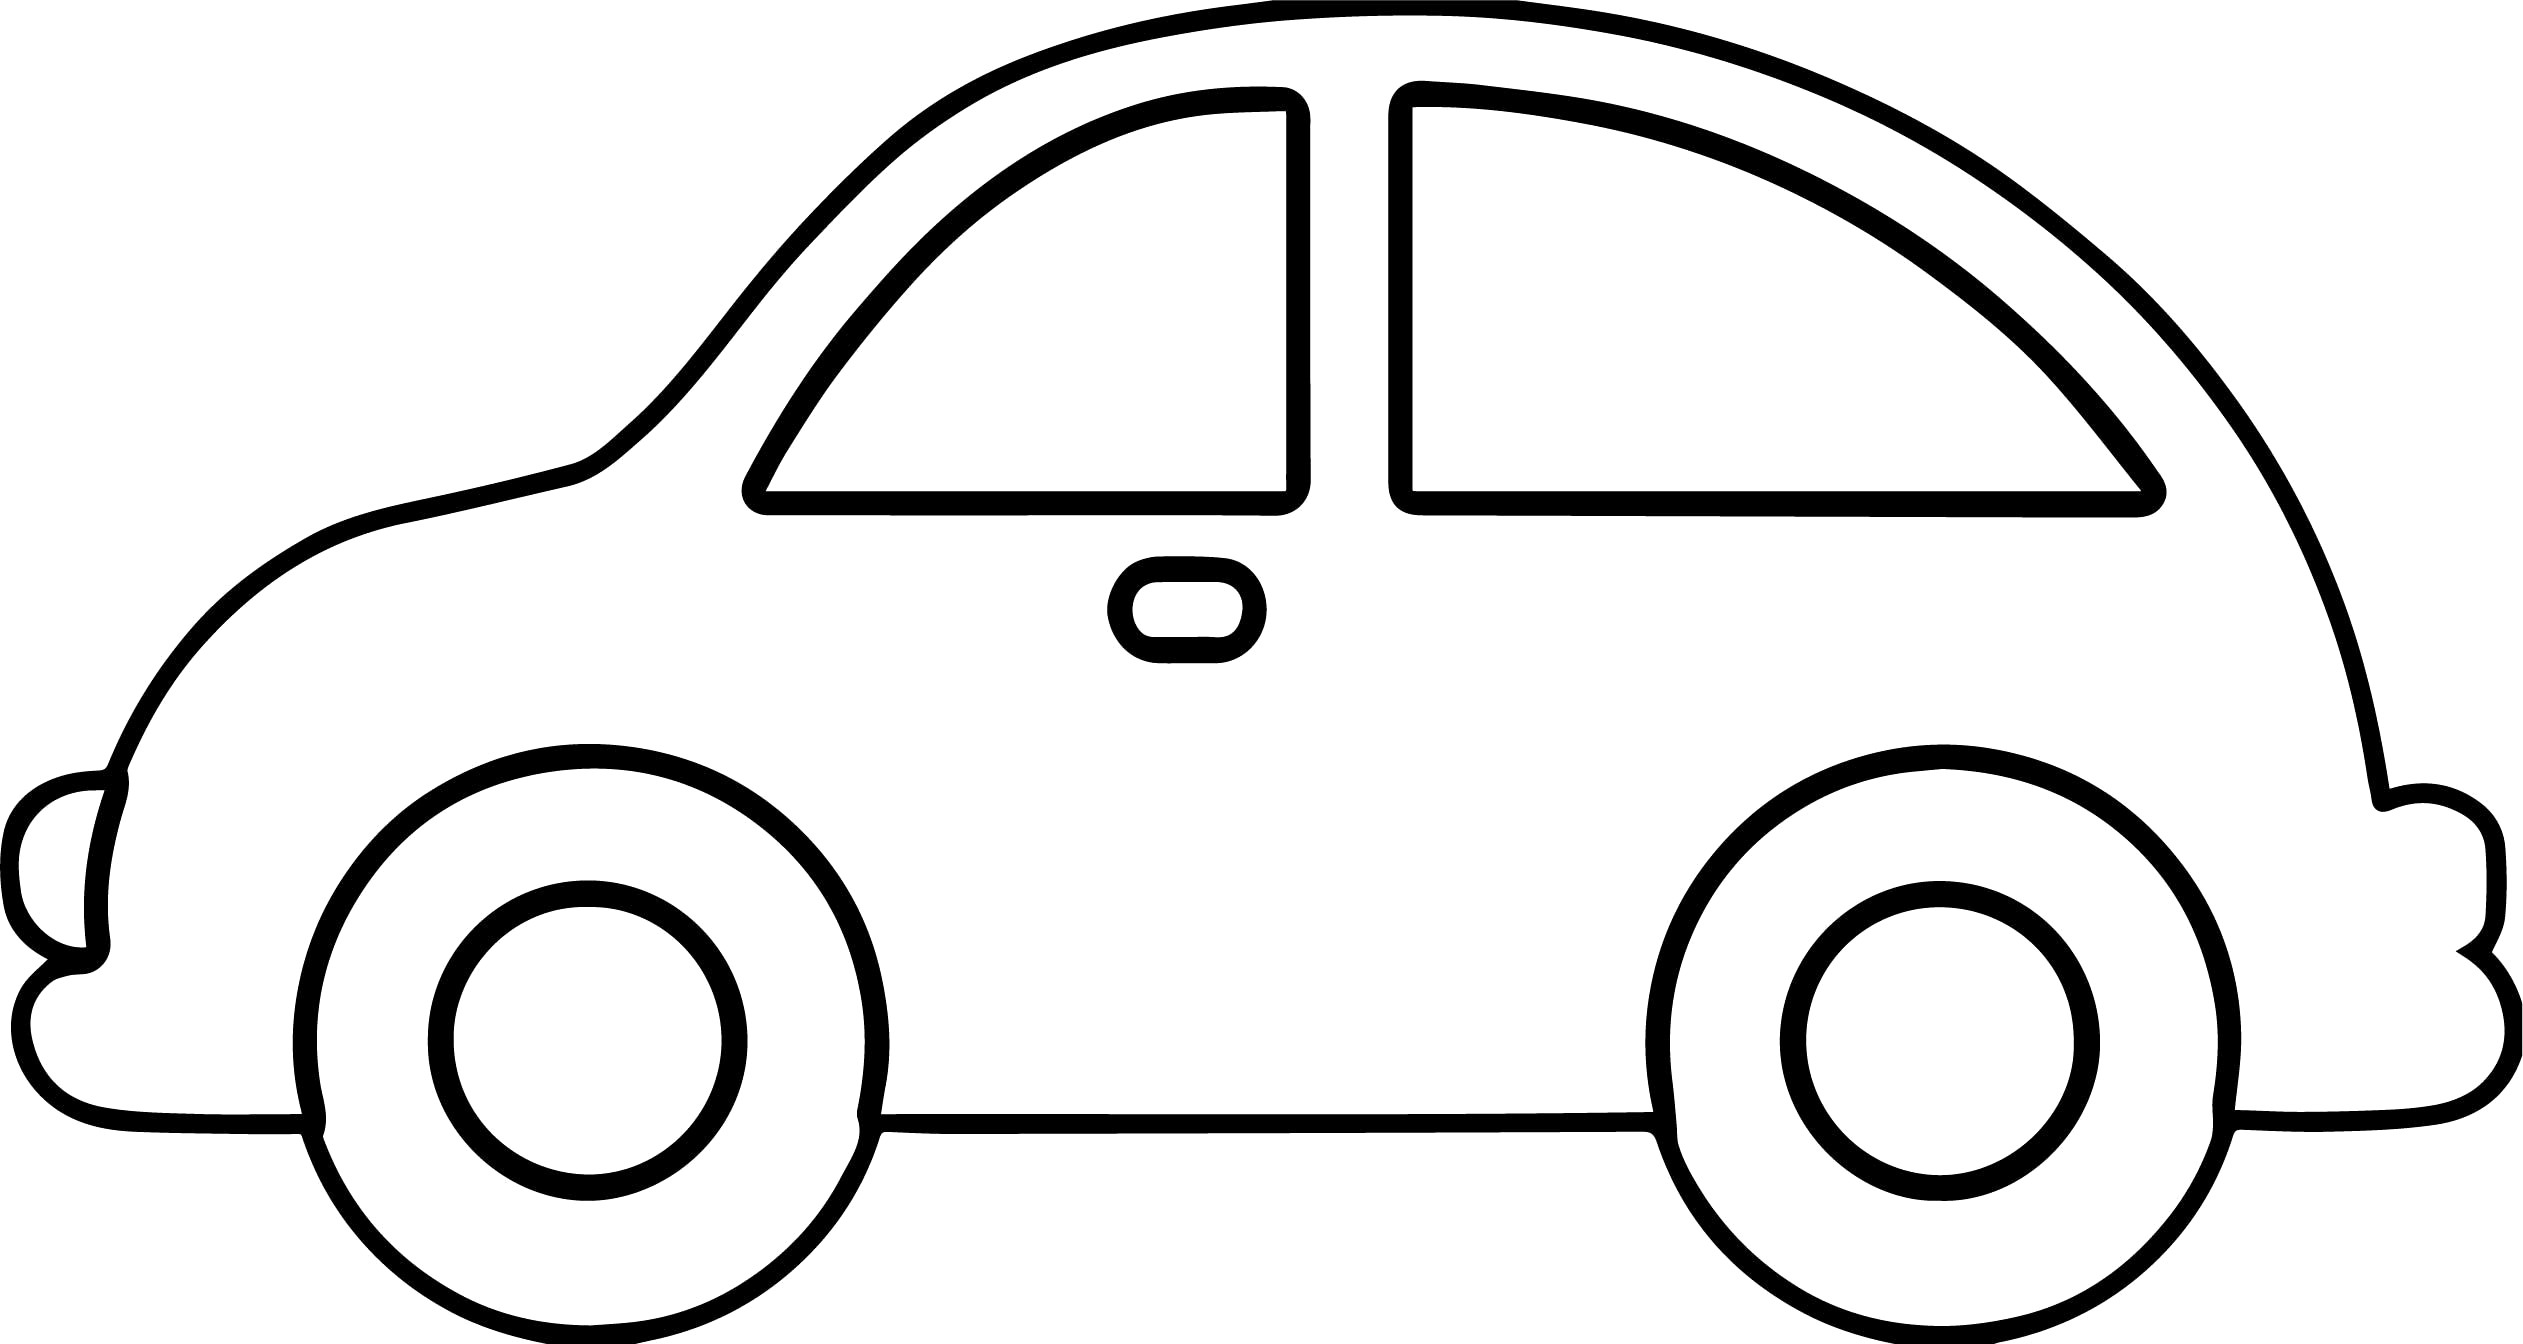 2523x1344 Car Images Outline Elegant Collection Of Cars Drawing Simple